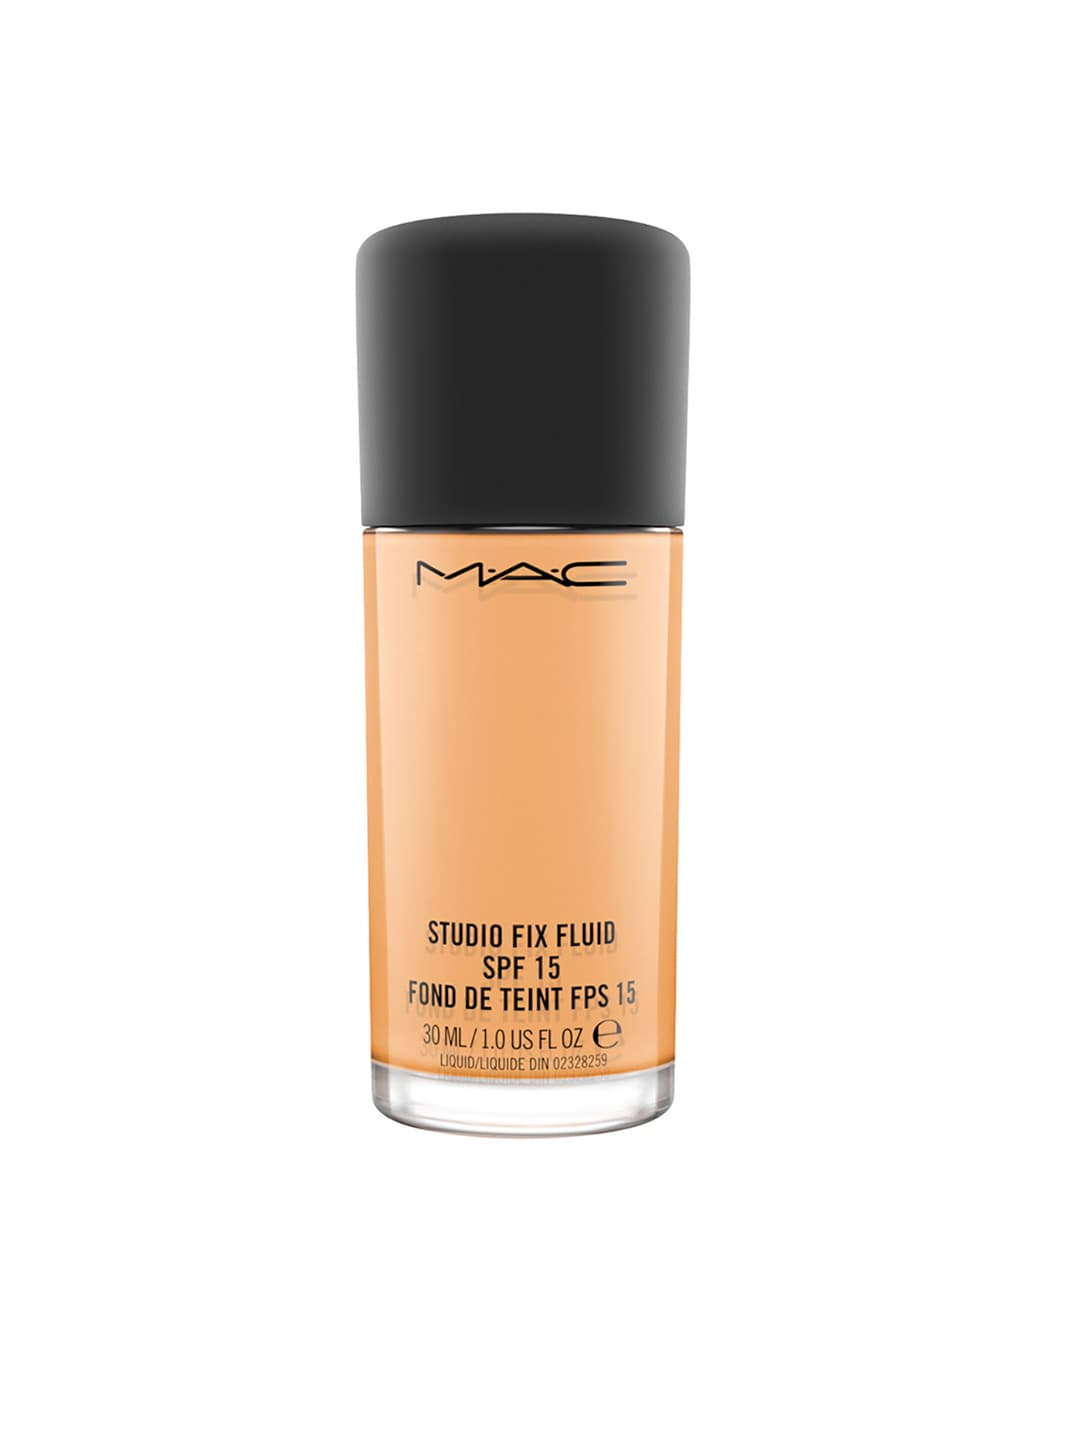 M.A.C NC 43.5 Studio Fix Fluid SPF 15 image